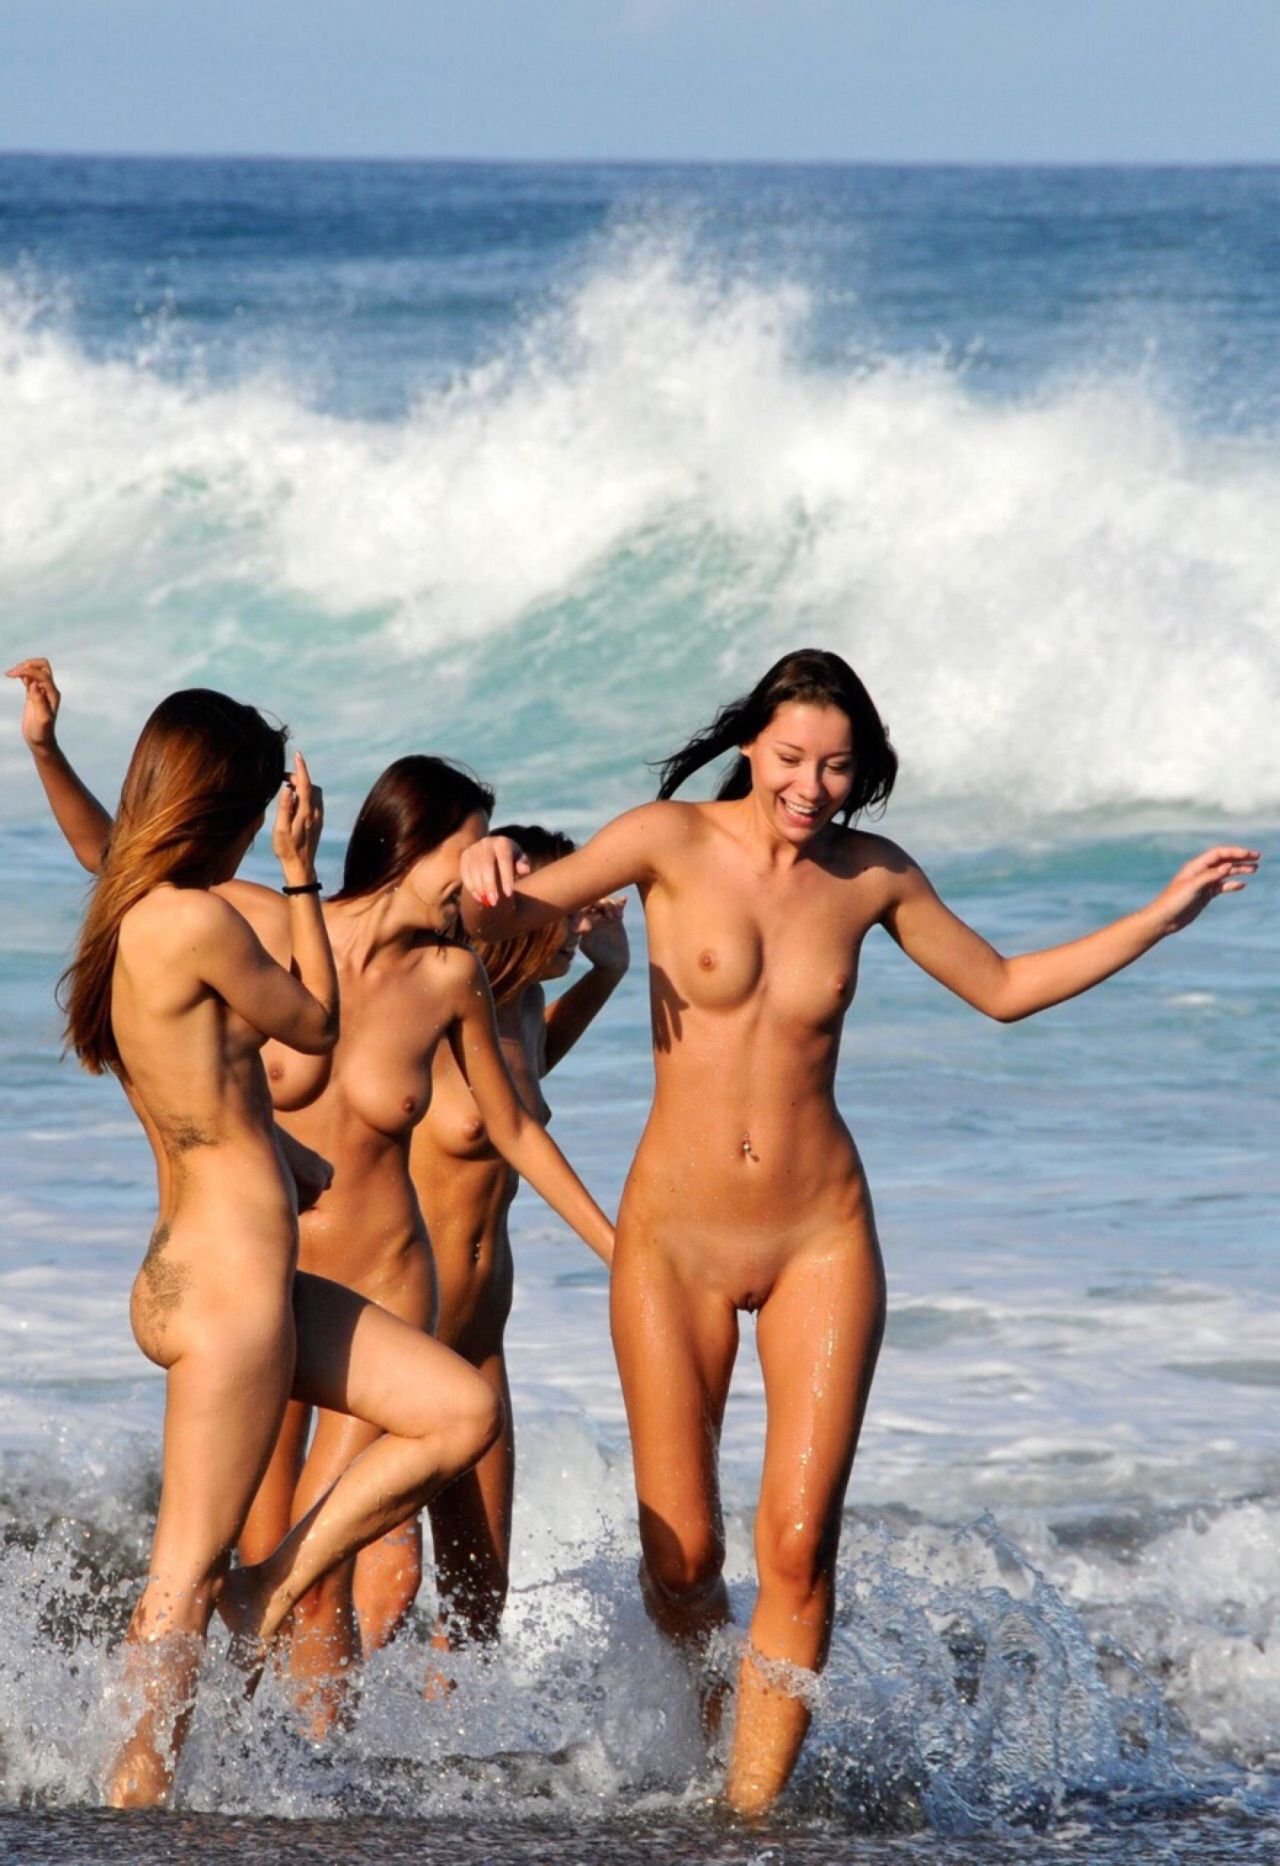 Four Nudist Friends Having Fun  Nude Beach Girls For -6564